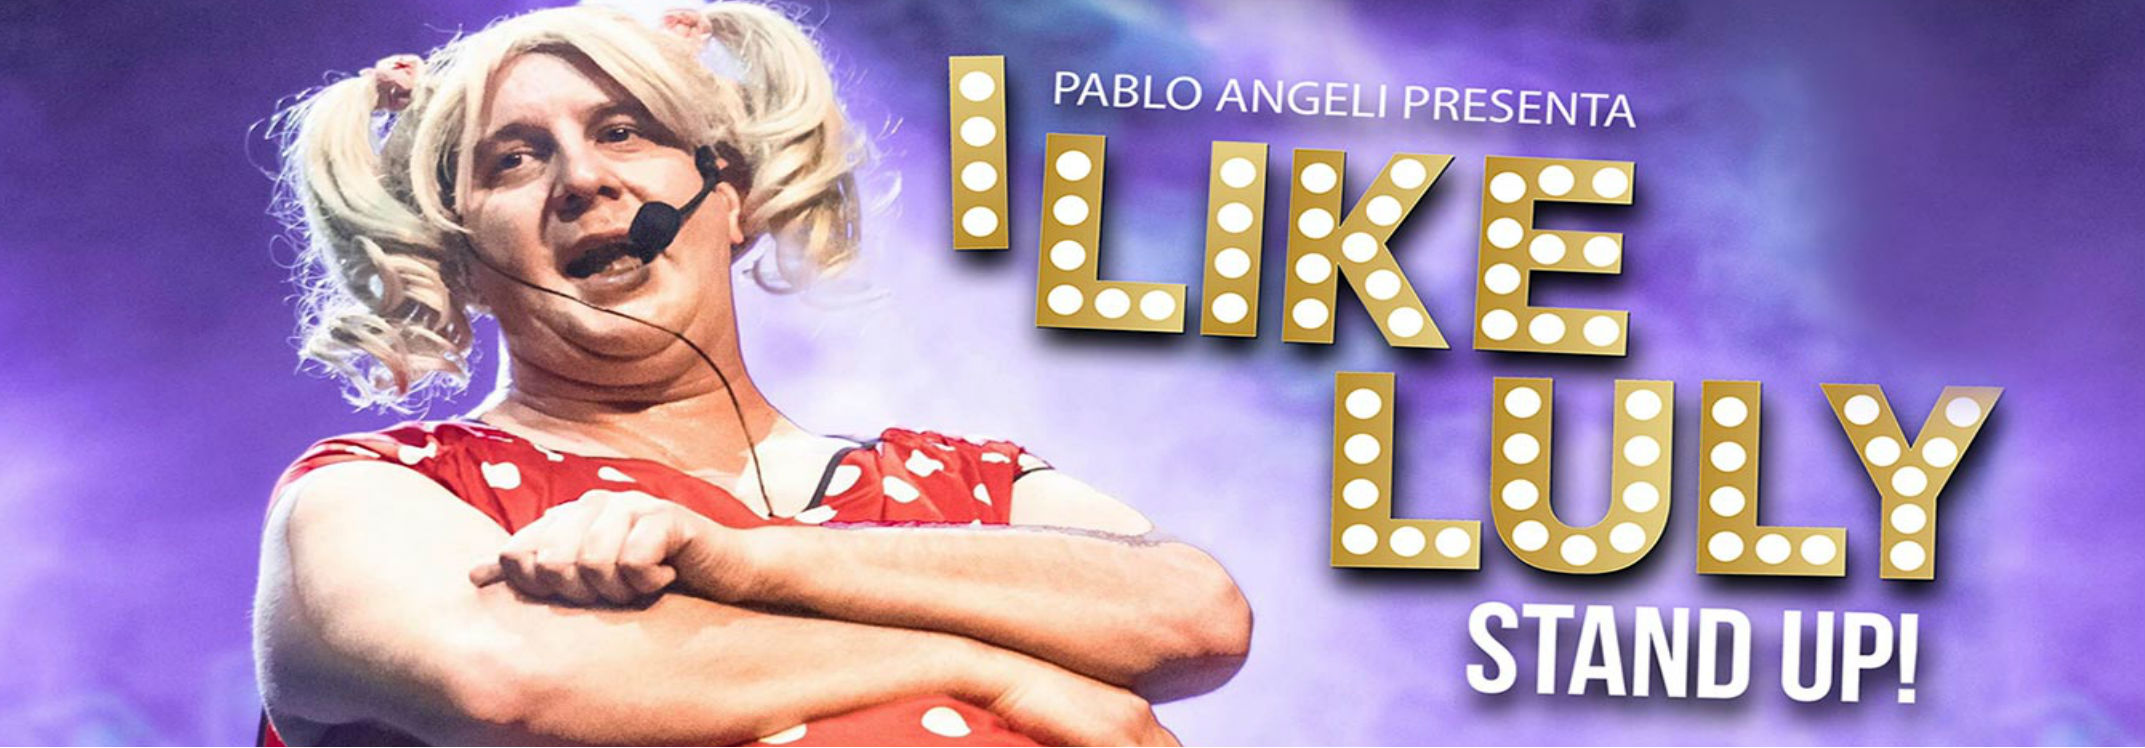 blog teatro maravillas I like Luly Stand Up llega a Madrid